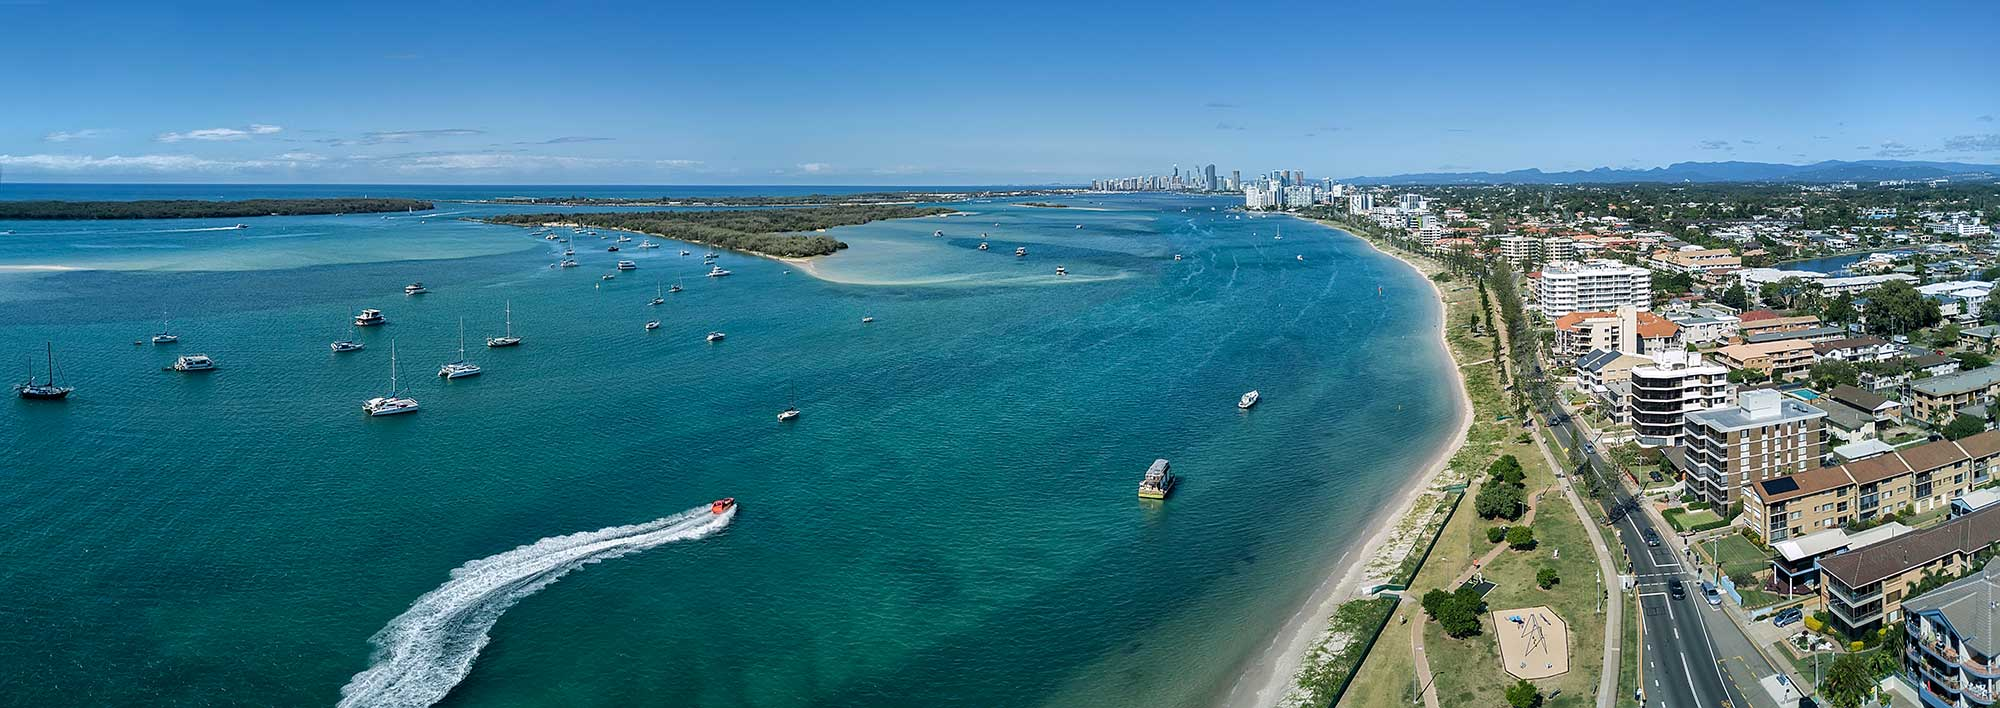 Drone photography April 2017 The Broadwater, Gold Coast panorama DroneAce